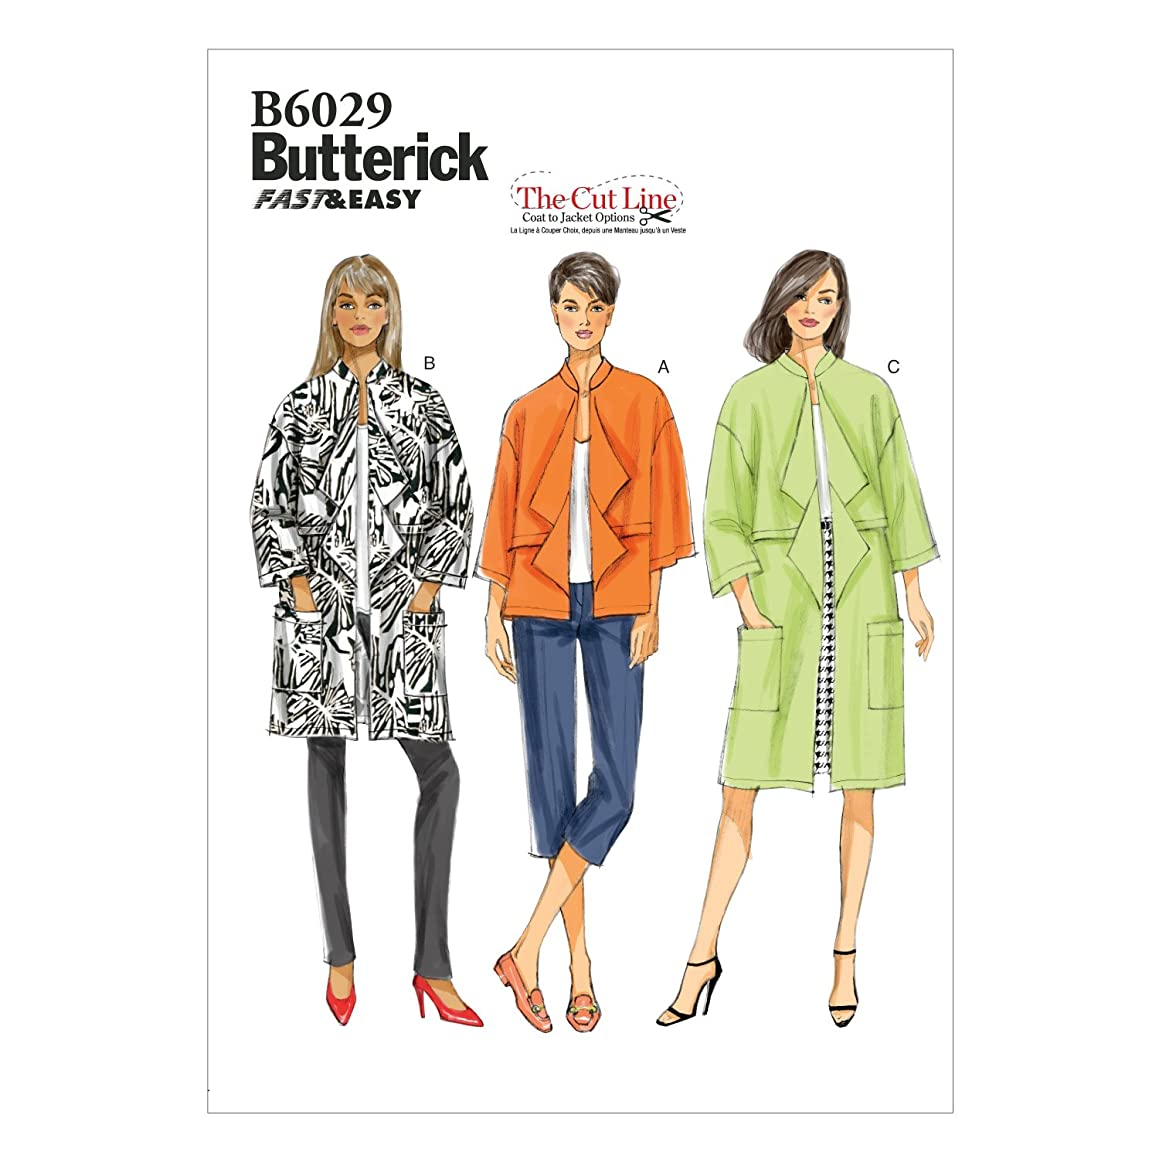 BUTTERICK PATTERNS B60290Y0 Misses' Jacket Sewing Template, Size Y (XSM-SML-MED)